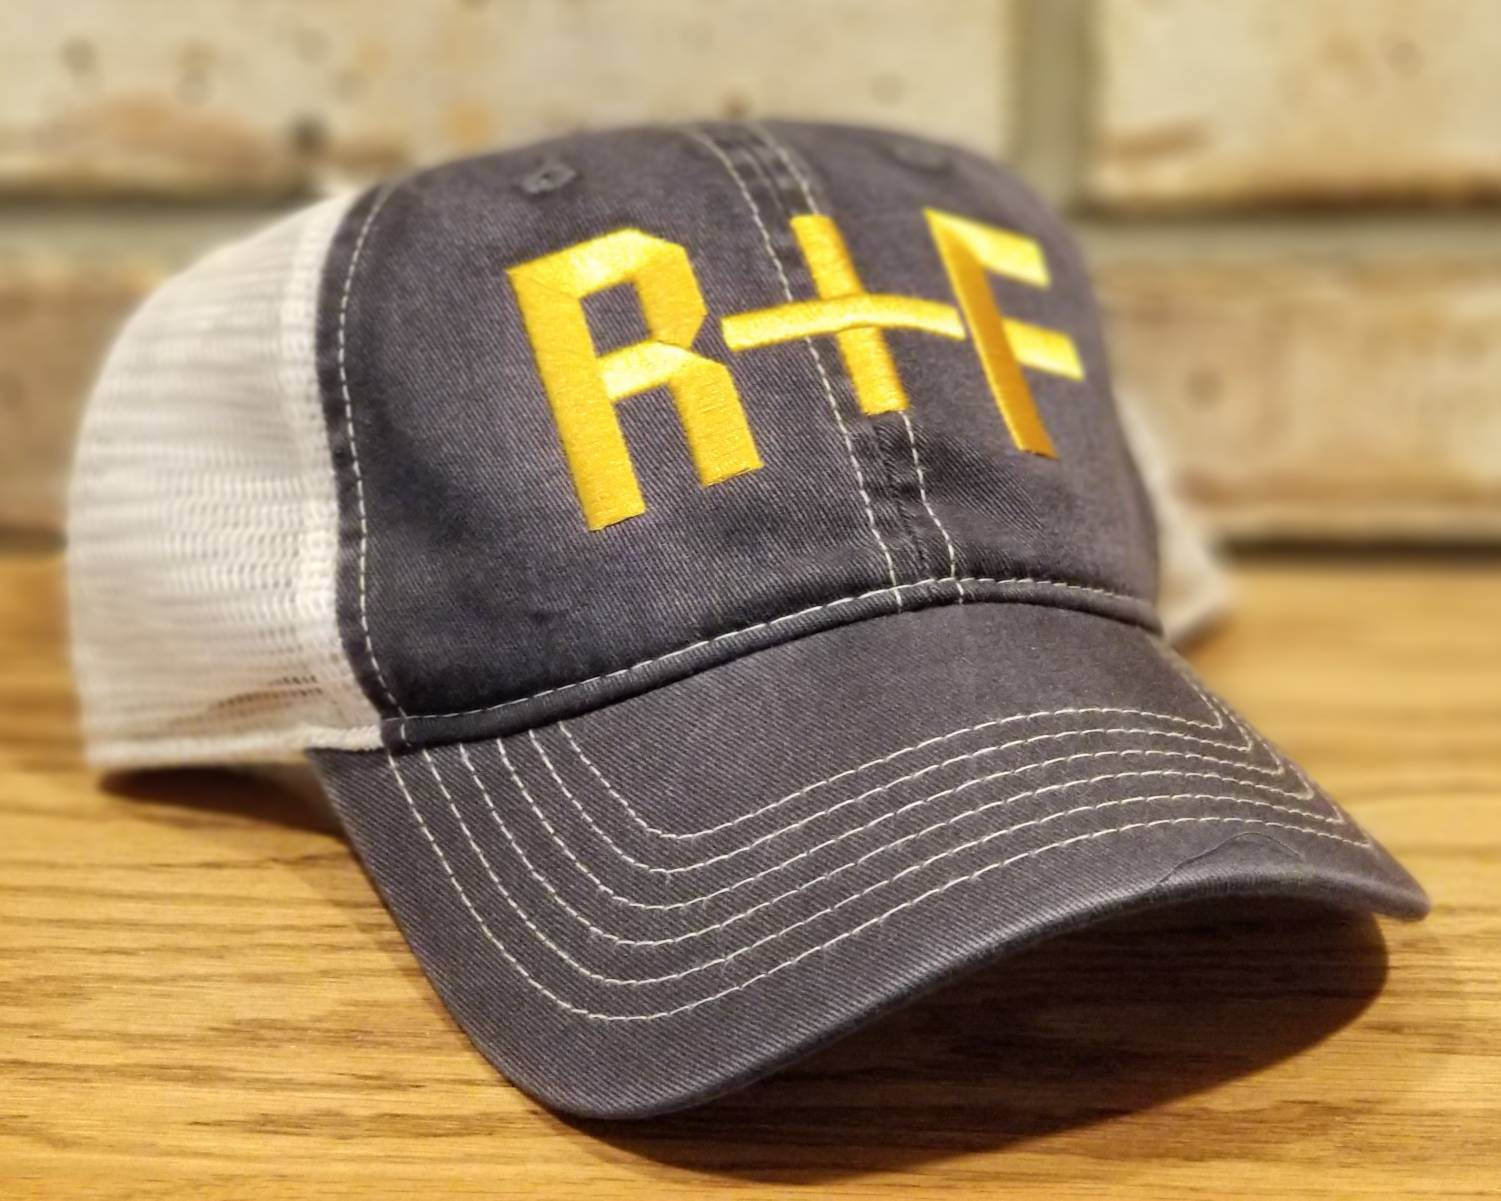 Free Shipping-Rodan + Fields Hat - R+F Embroidered Trucker or Baseball Hat, Personalized Rodan + Fields, Boss Lady, Skincare Consultants Hat